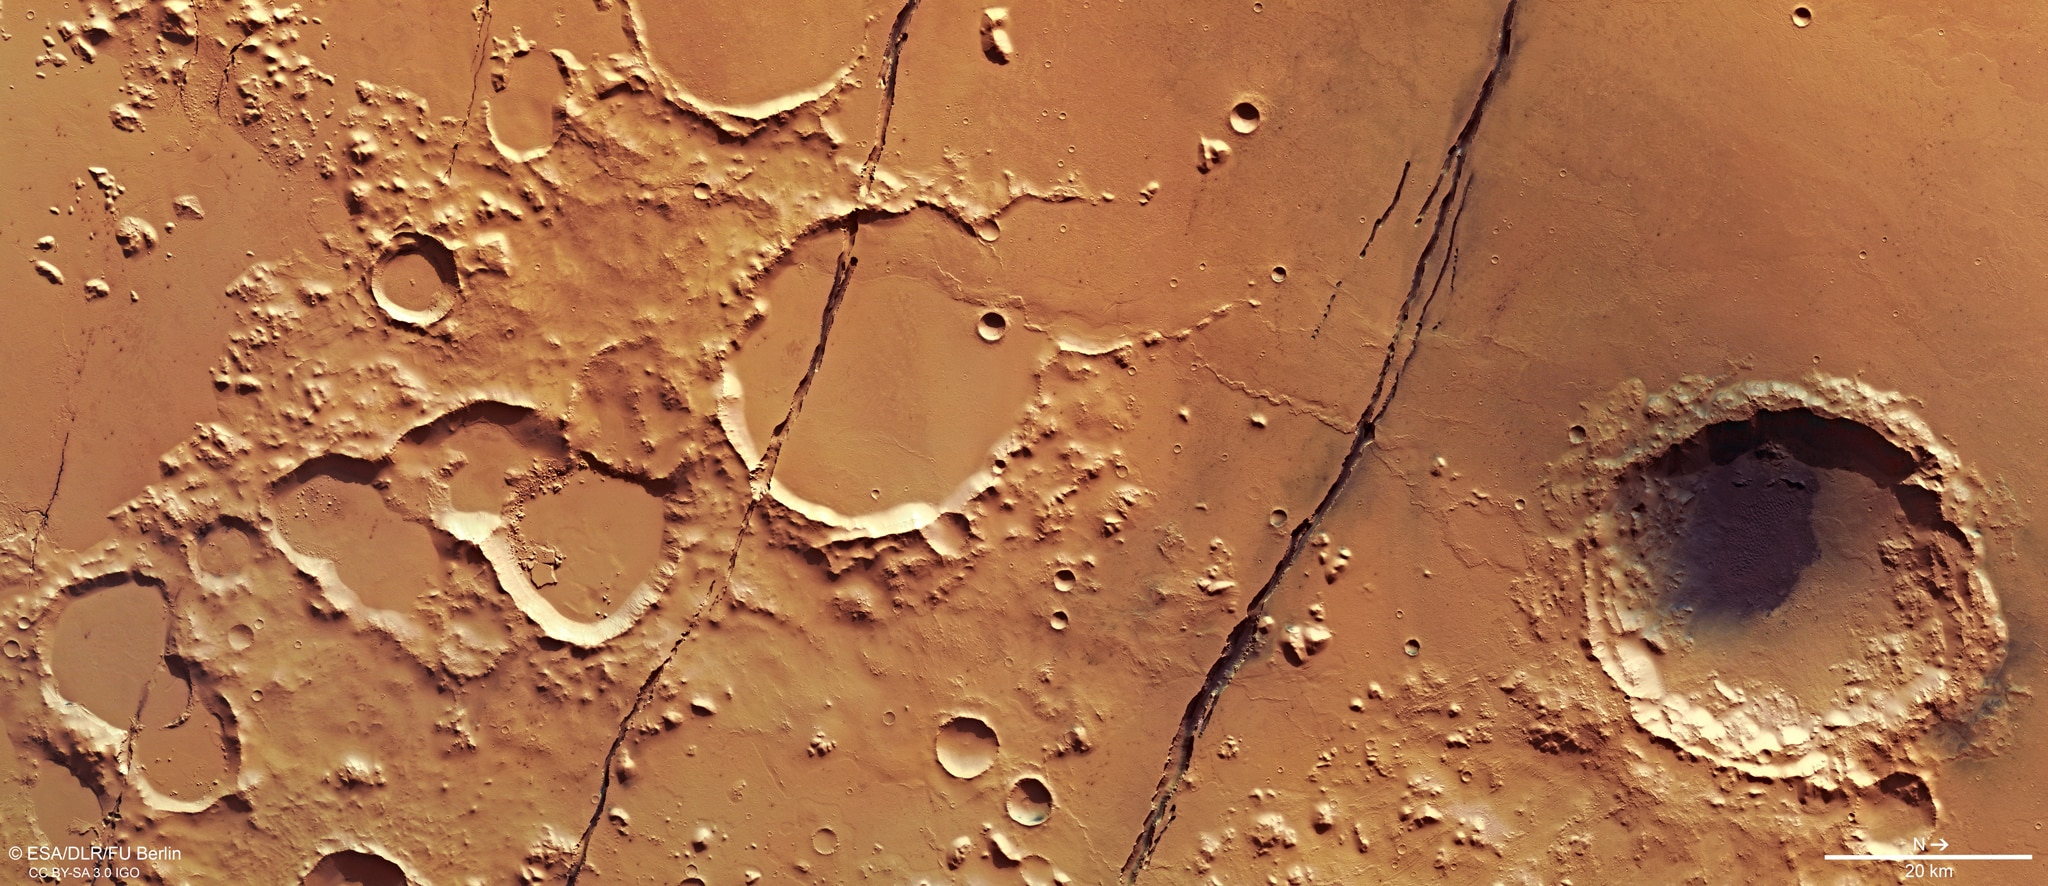 First active fault zone found on Mars